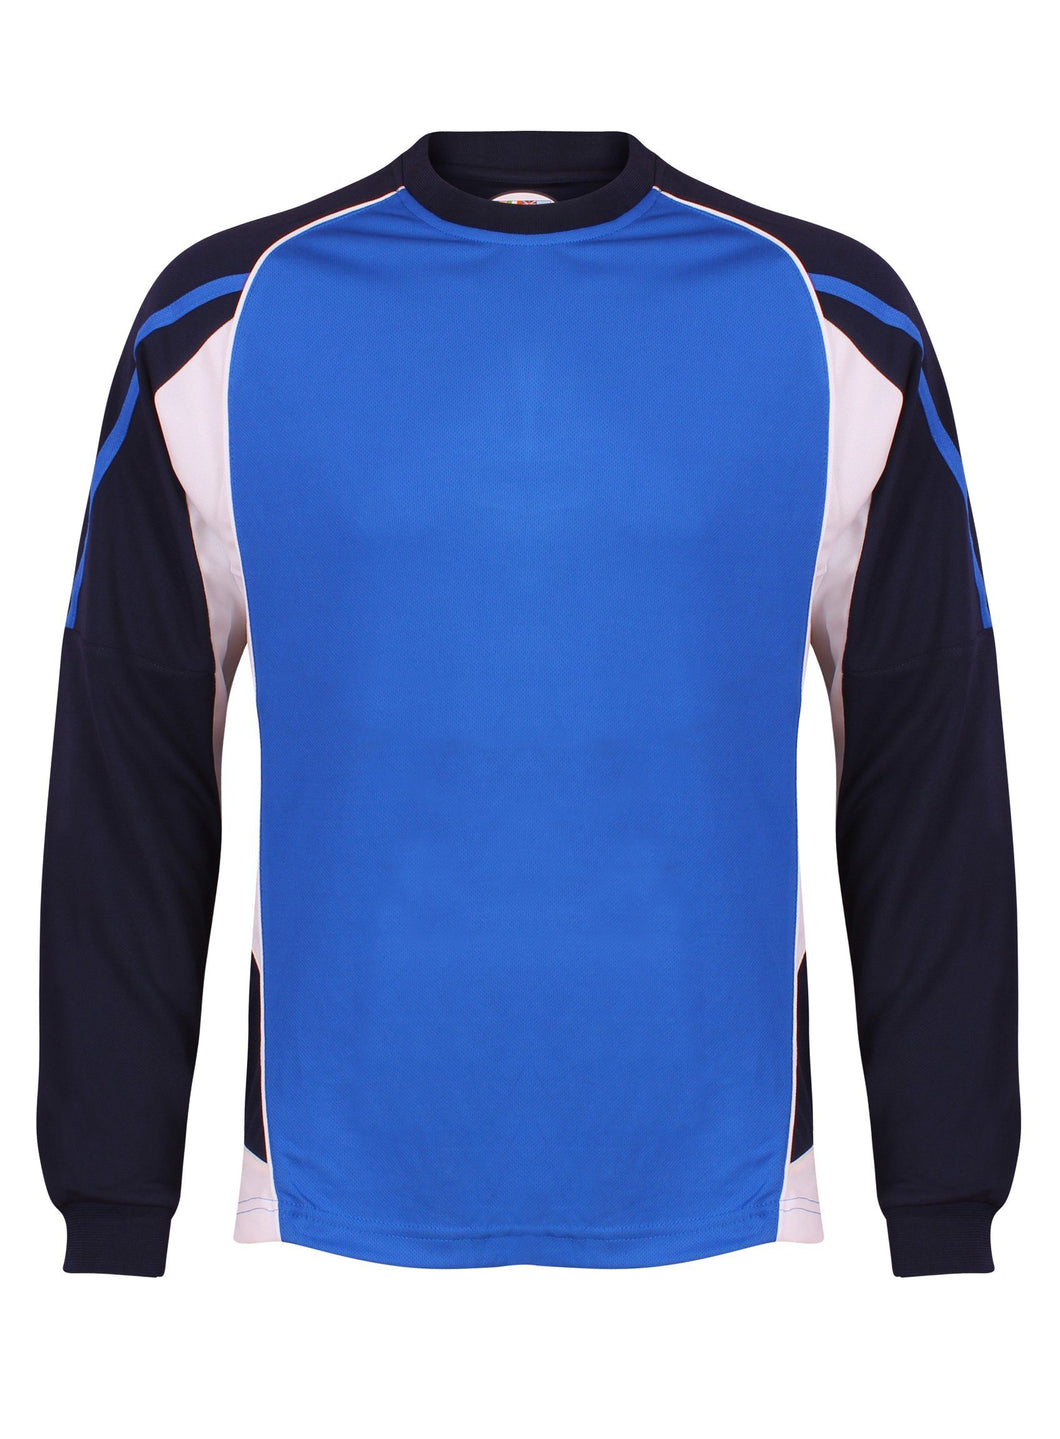 Teamstar Long Sleeve Crew Kids Gazelle Sports UK Yes SB Col A) Royal Blue/ Navy/ White